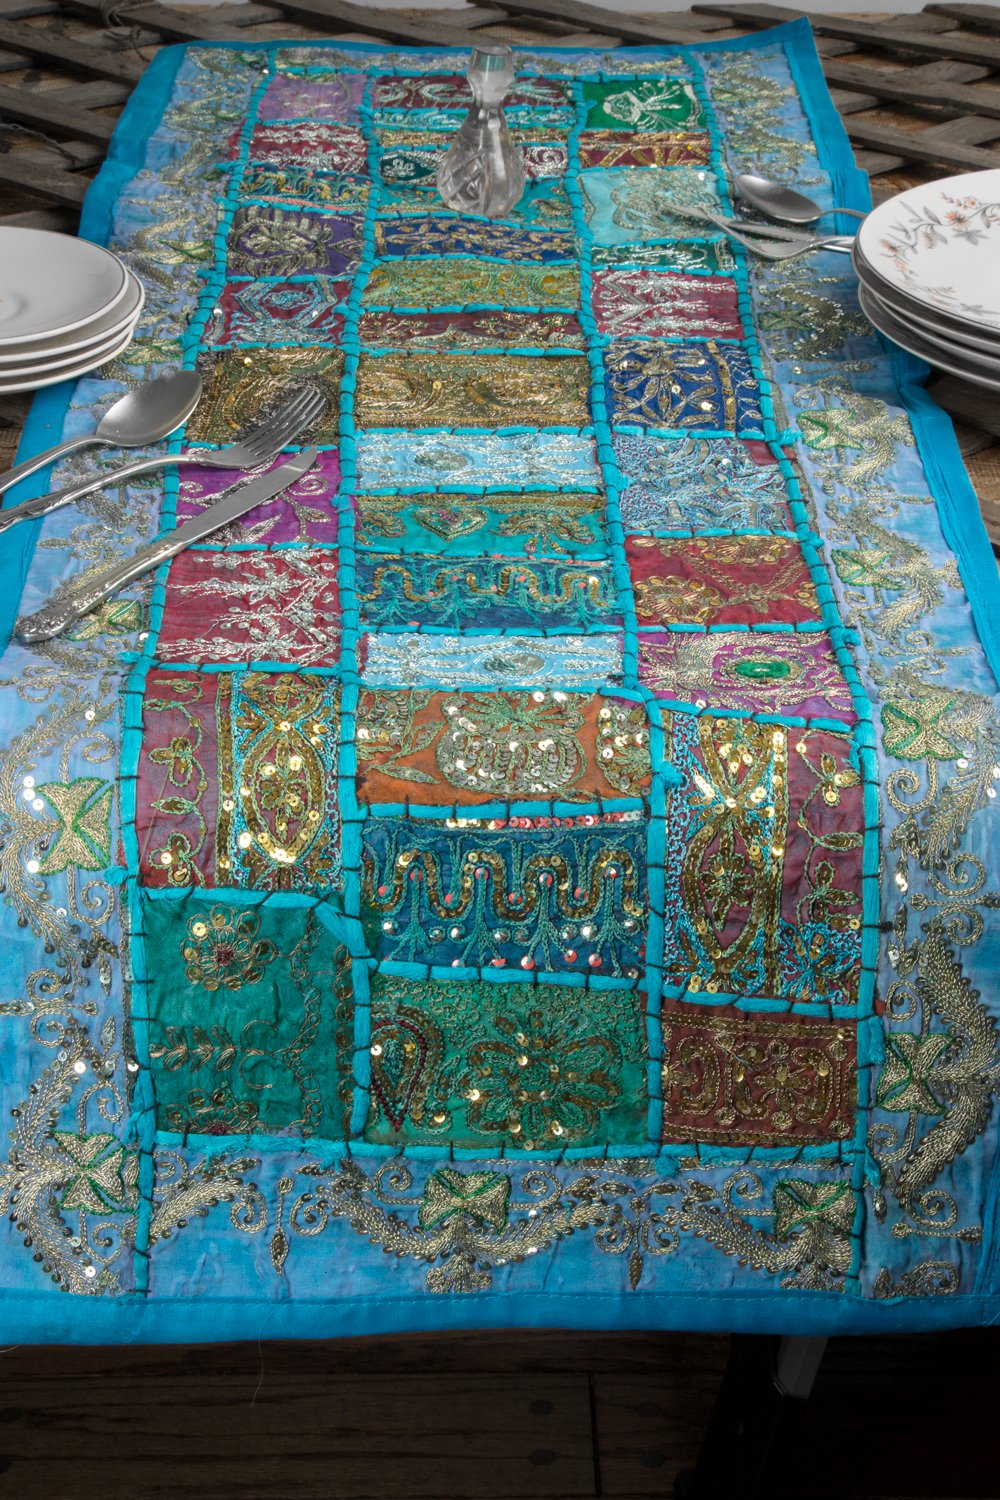 """Blue Table Runner 100% Cotton 18"""" x 58"""" Hand Embroidered Boho Bohemian Colorful Patchwork Indian Decoration Reception Party Wedding Decor Tapestry"""